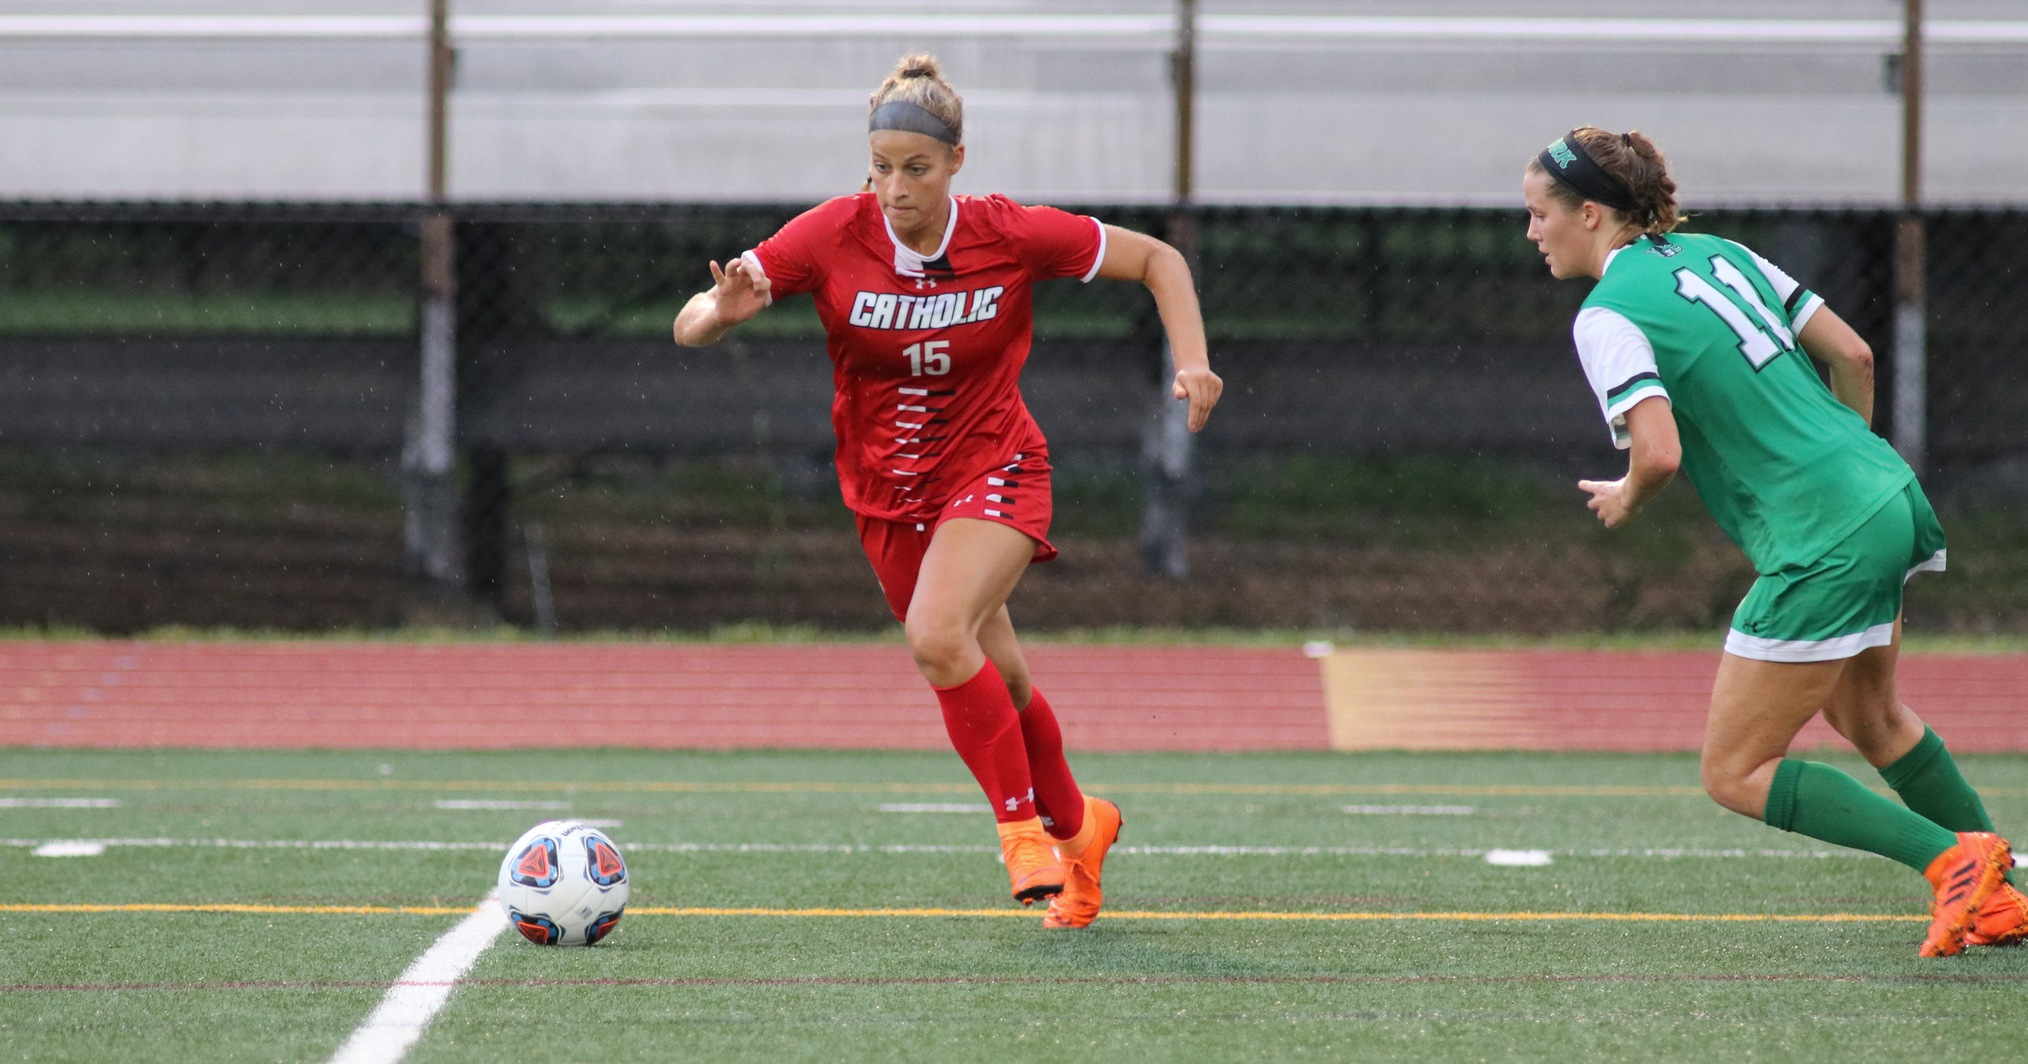 Cardinals Fall at Eastern Mennonite in Overtime, 2-1